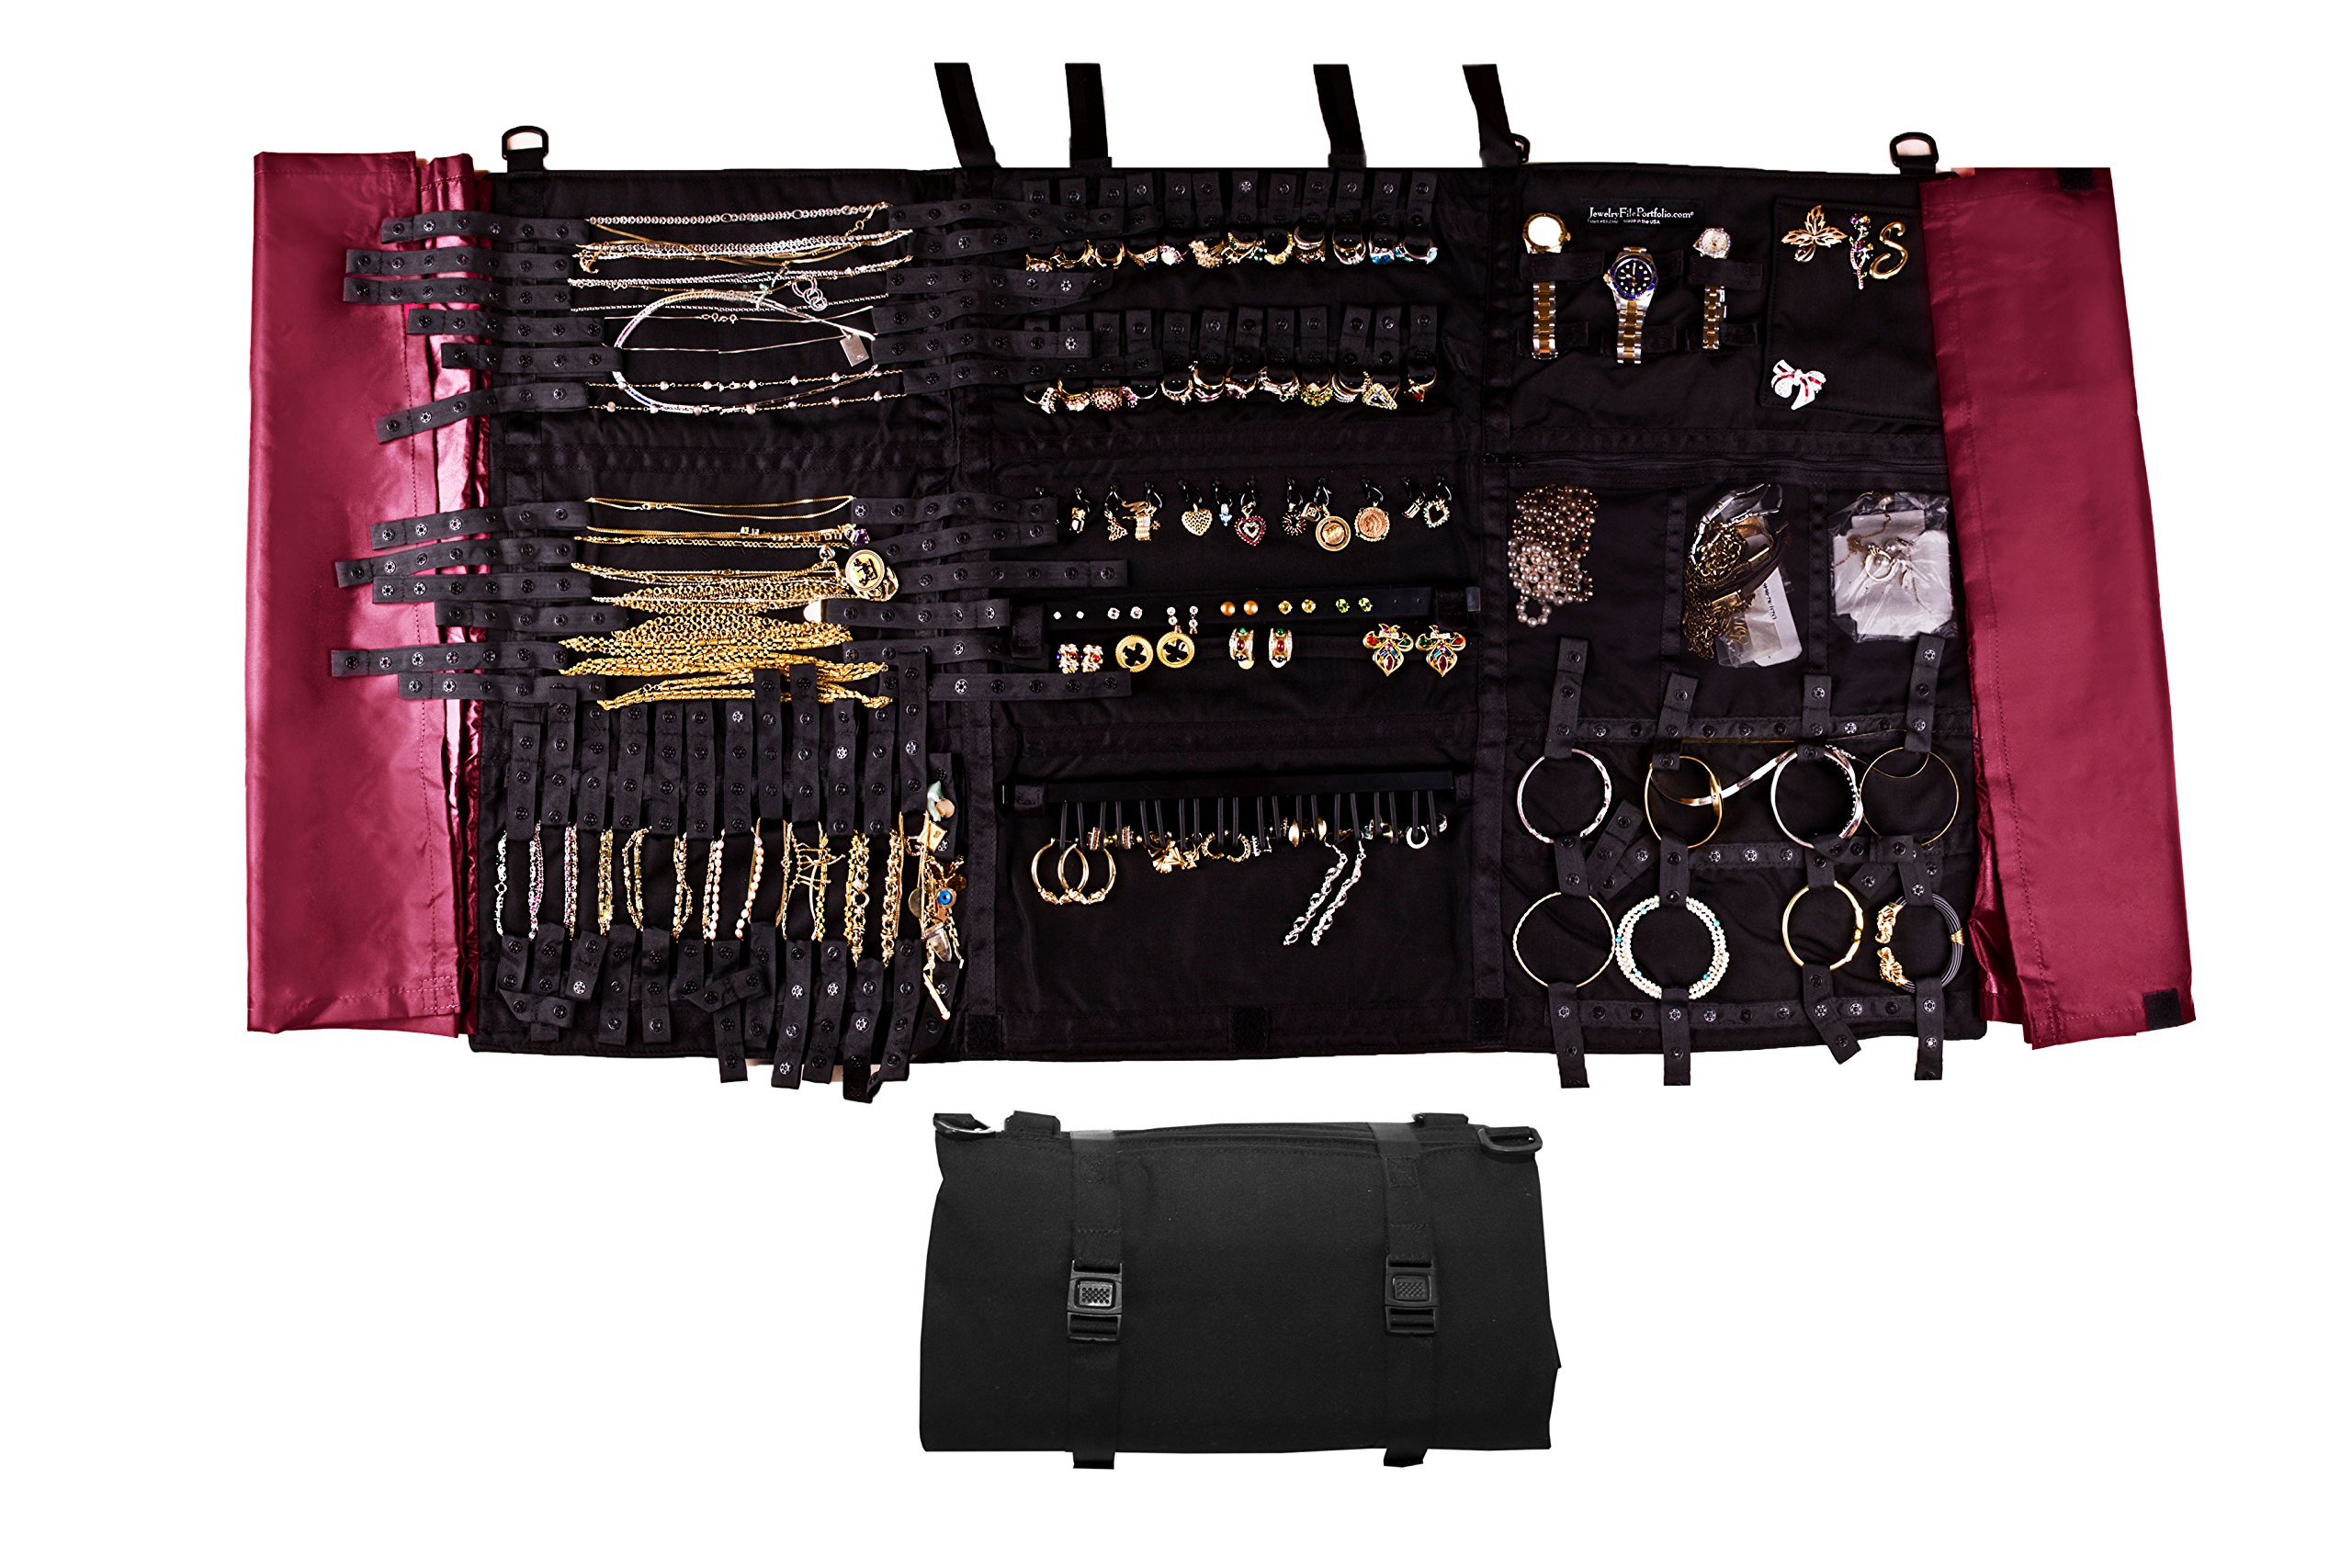 Folding Foldable Storage Case Jewelry Organizer by Jewelry File Portfolio 21 Century Holds over 117 pieces Securely